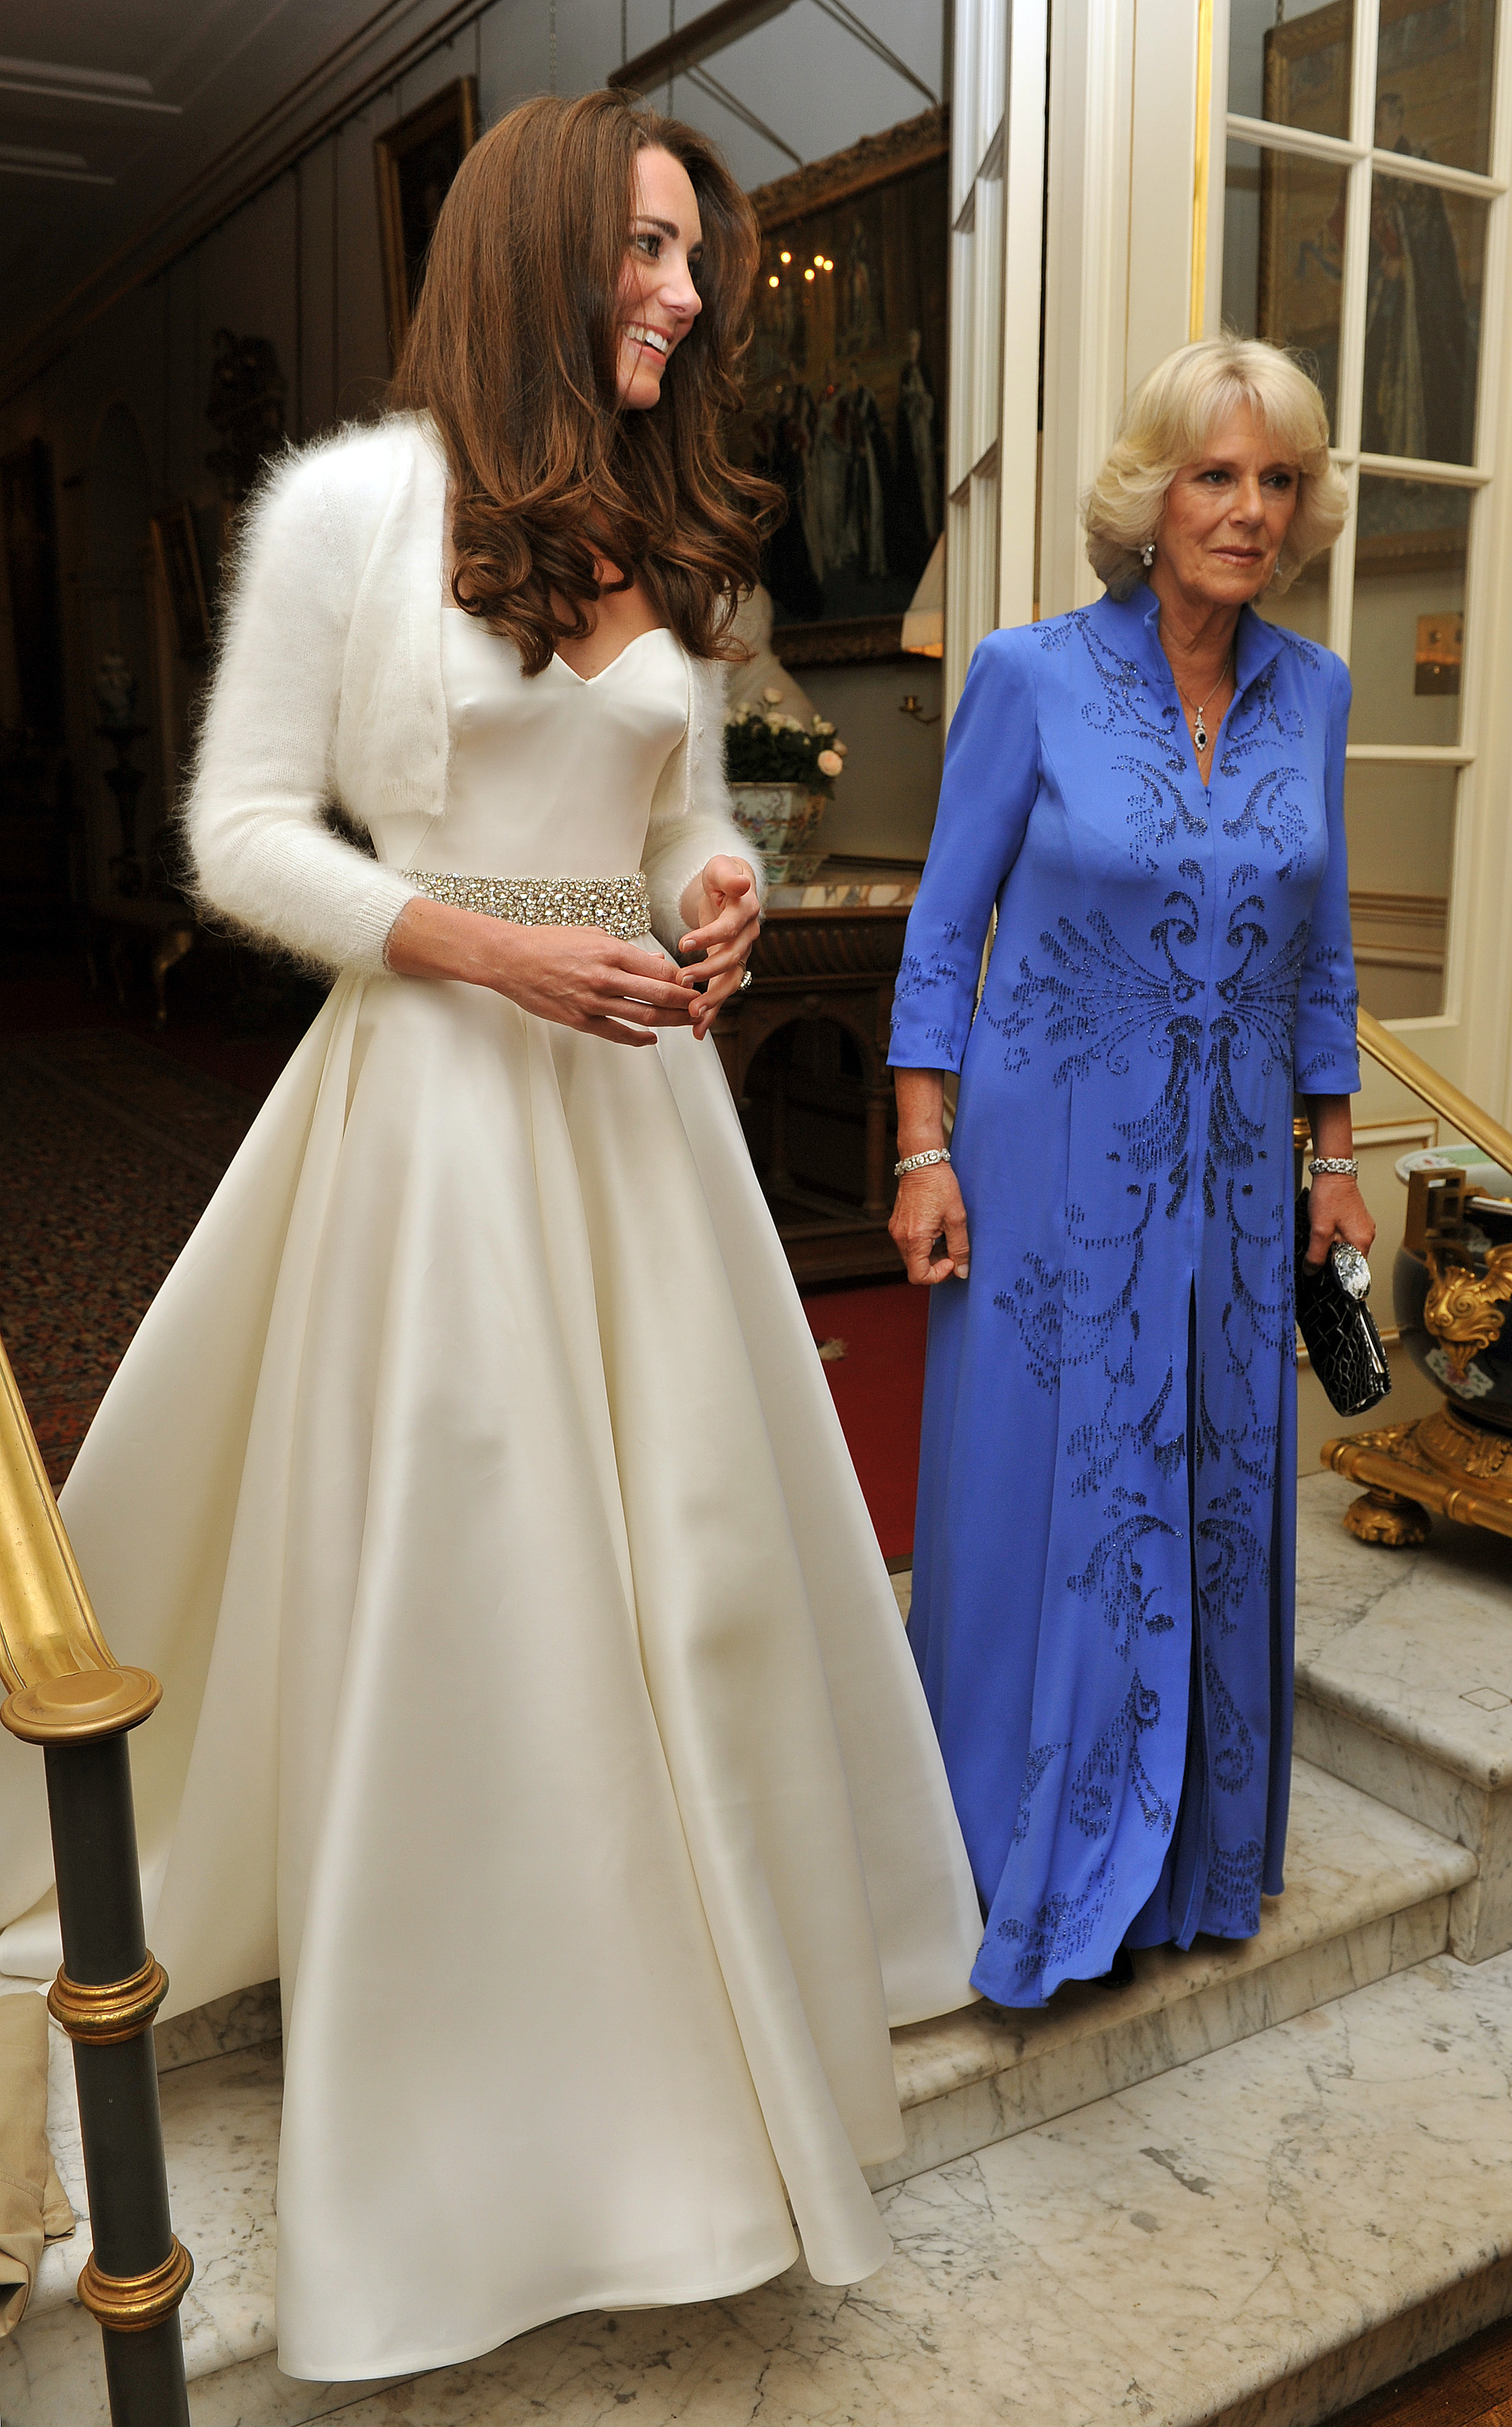 Catherine, Duchess of Cambridge (L) and Camilla, Duchess of Cornwall leave Clarence House to travel to Buckingham Palace for the evening celebrations following her wedding to Prince William, Duke of Cambridge on April 29, 2011 in London, England. The marriage of the second in line to the British throne was led by the Archbishop of Canterbury and was attended by 1900 guests, including foreign Royal family members and heads of state. Thousands of well-wishers from around the world have also flocked to London to witness the spectacle and pageantry of the Royal Wedding.